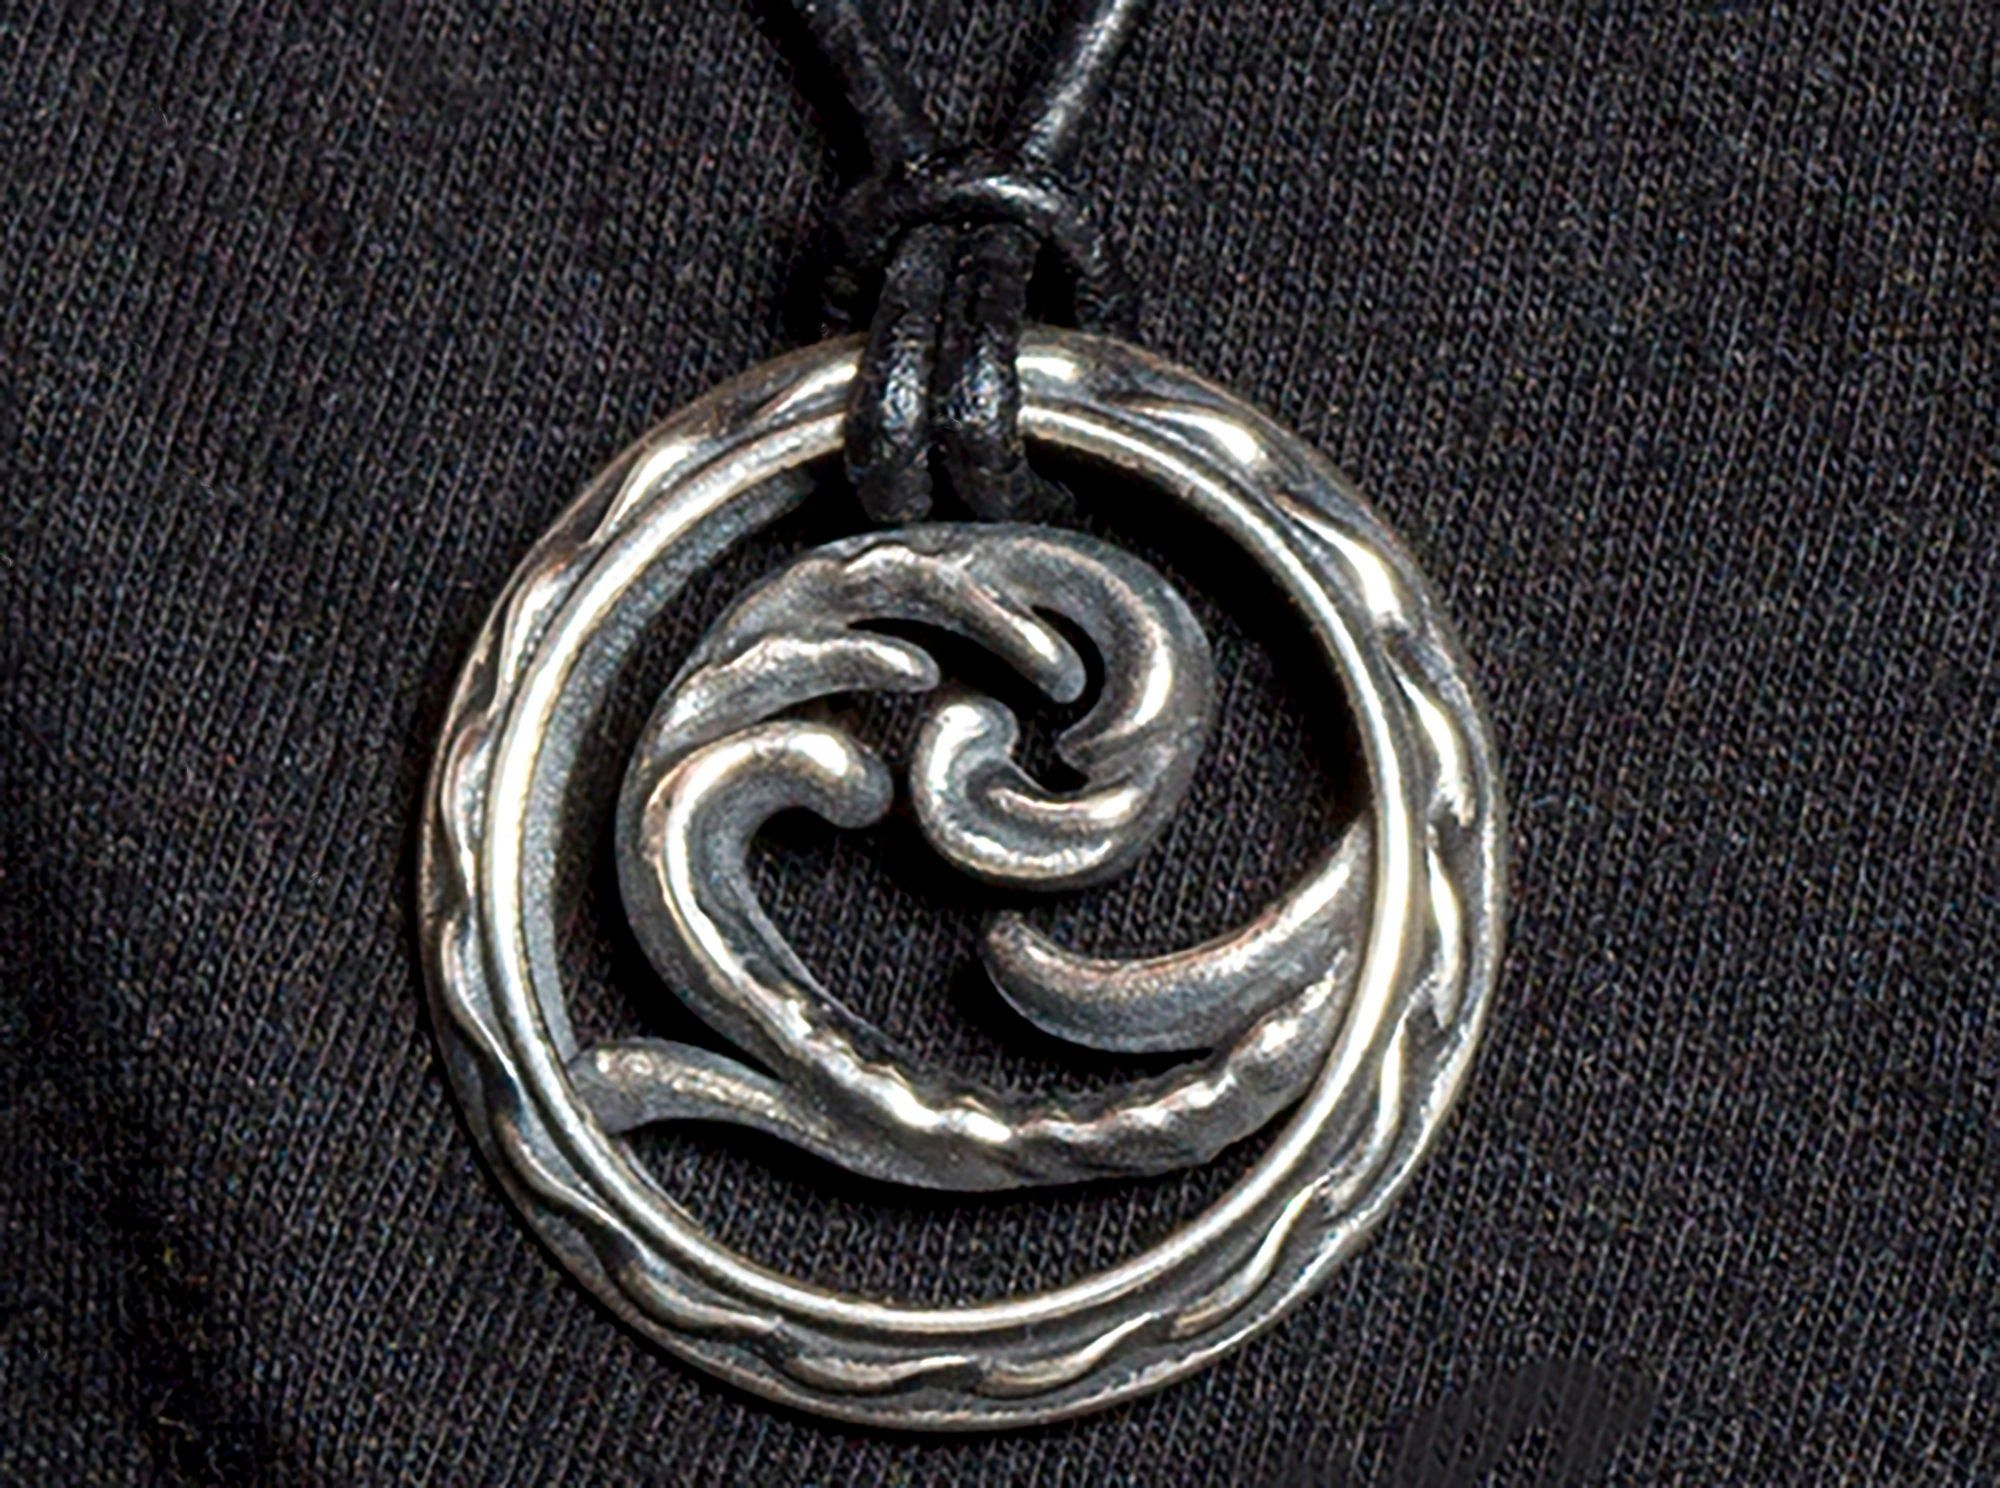 Rustic silver necklace Cast sterling silver necklace Lost wax silver necklace Sterling silver necklace